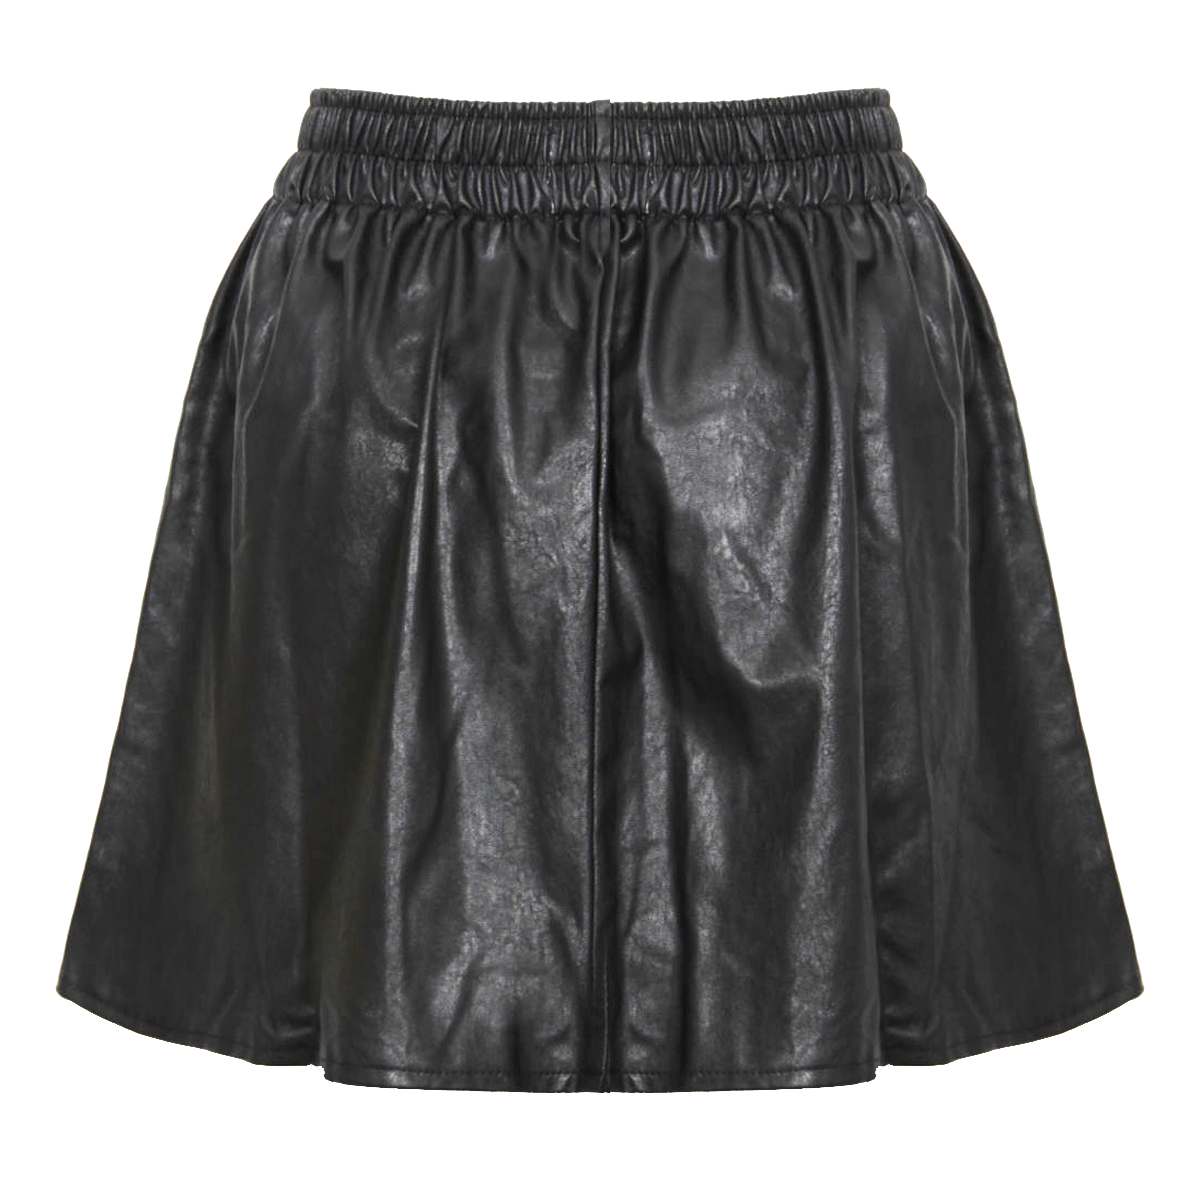 Awesome Roberto Cavalli Pleated Skirt BLACK Women Clothing Skirts [w-11877131] - $199.41  Roberto ...